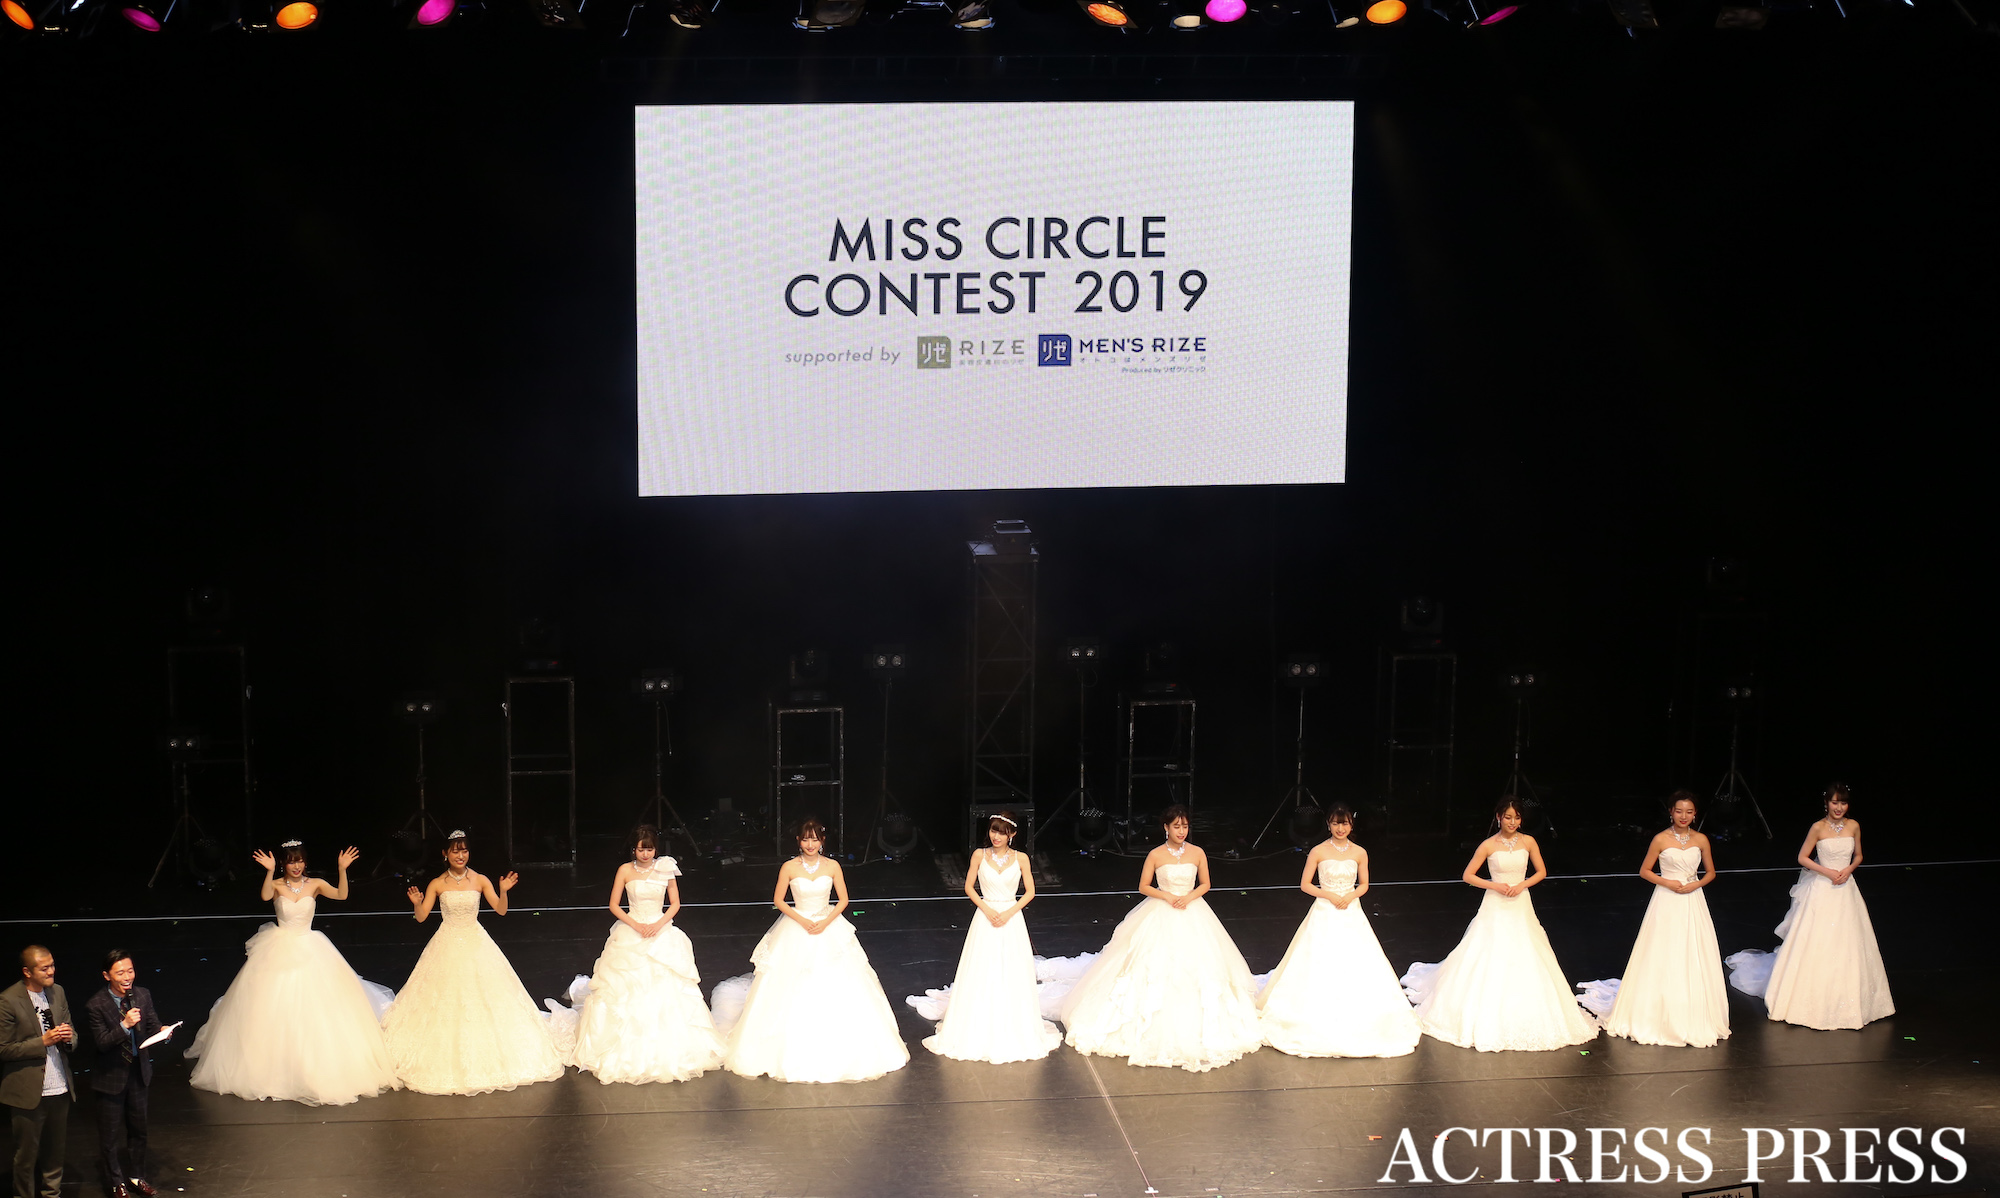 「MISS CIRCLE CONTEST 2019 supported by リゼクリニック・メンズリゼ」(ミスサークルコンテスト)の表彰式が11月16日、東京都内TOKYO DOME CITY HALL内にて